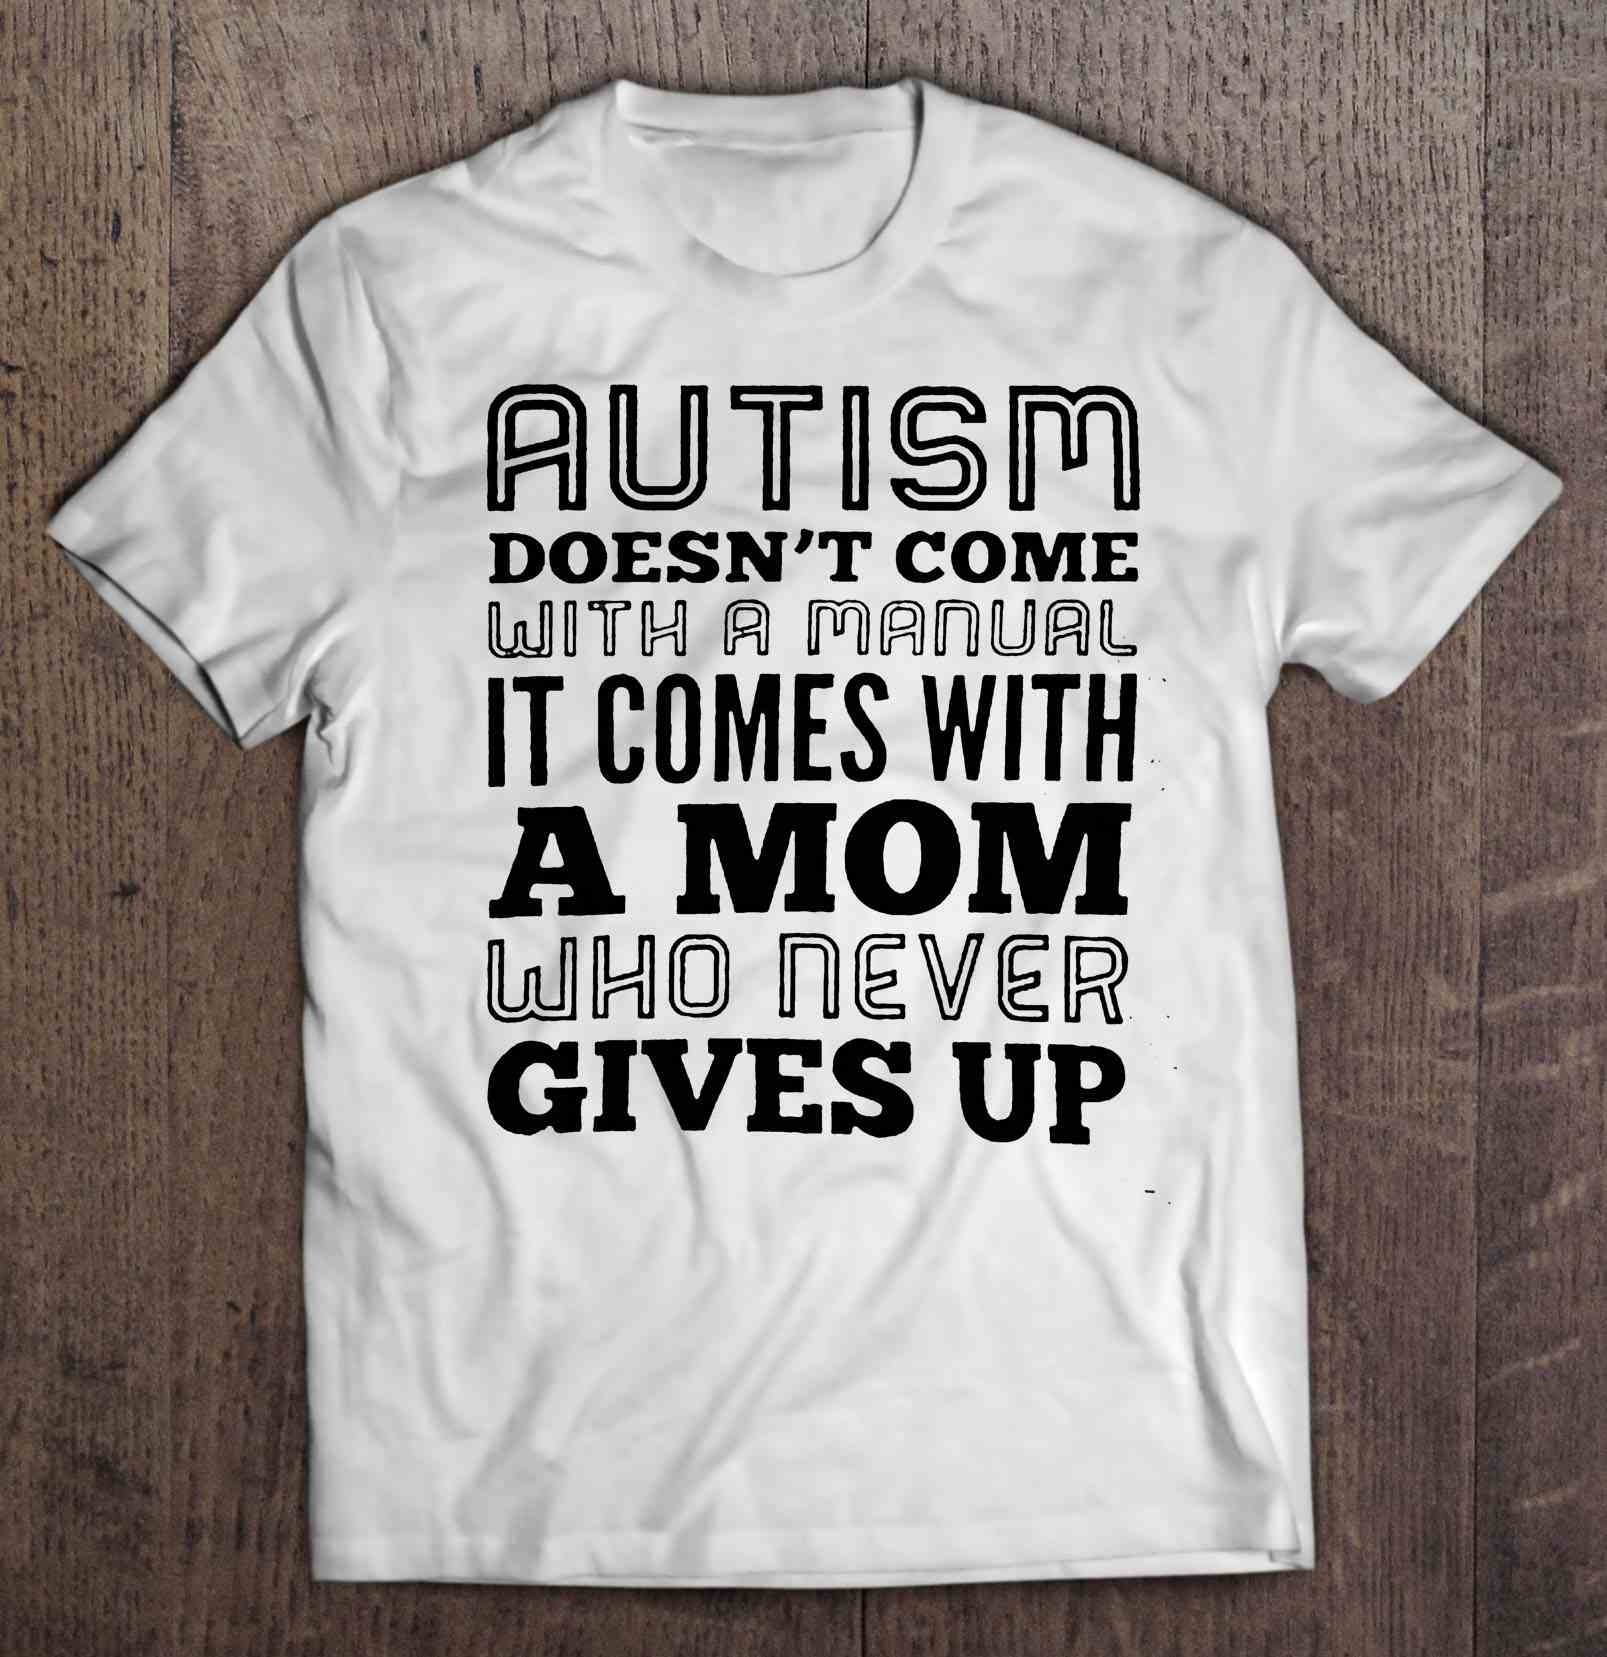 Autism Doesn'T Come With A Manual It Comes With A Mom Who Never Gives Up White Version T-Shirts image